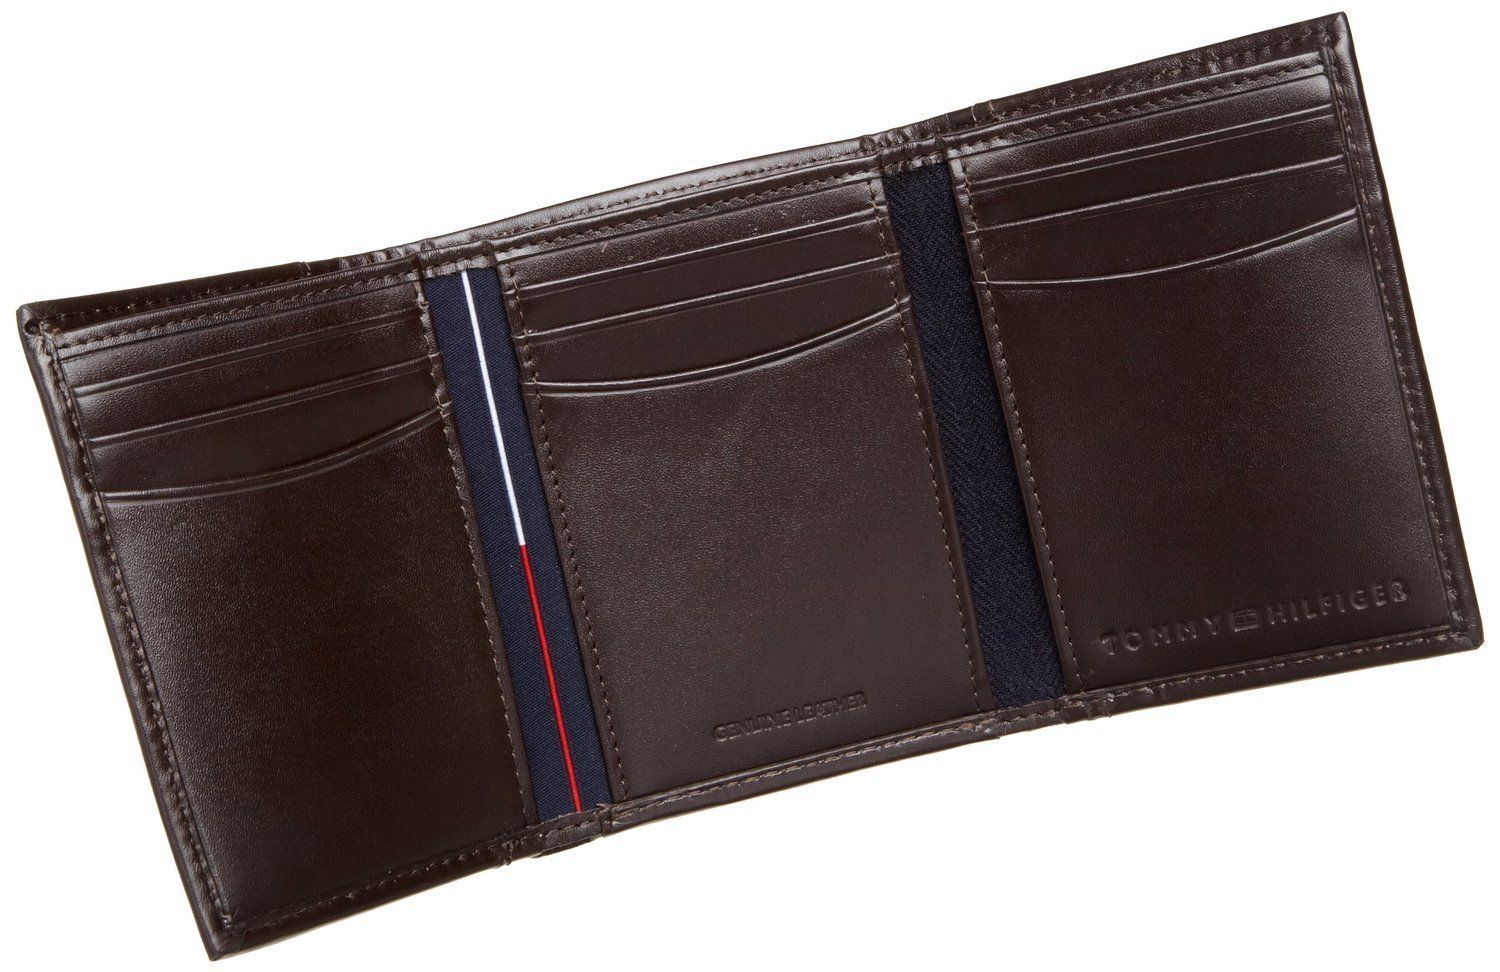 c6293bf12135e9 Tommy Hilfiger Men s Premium Leather Credit Card ID Wallet Trifold ...